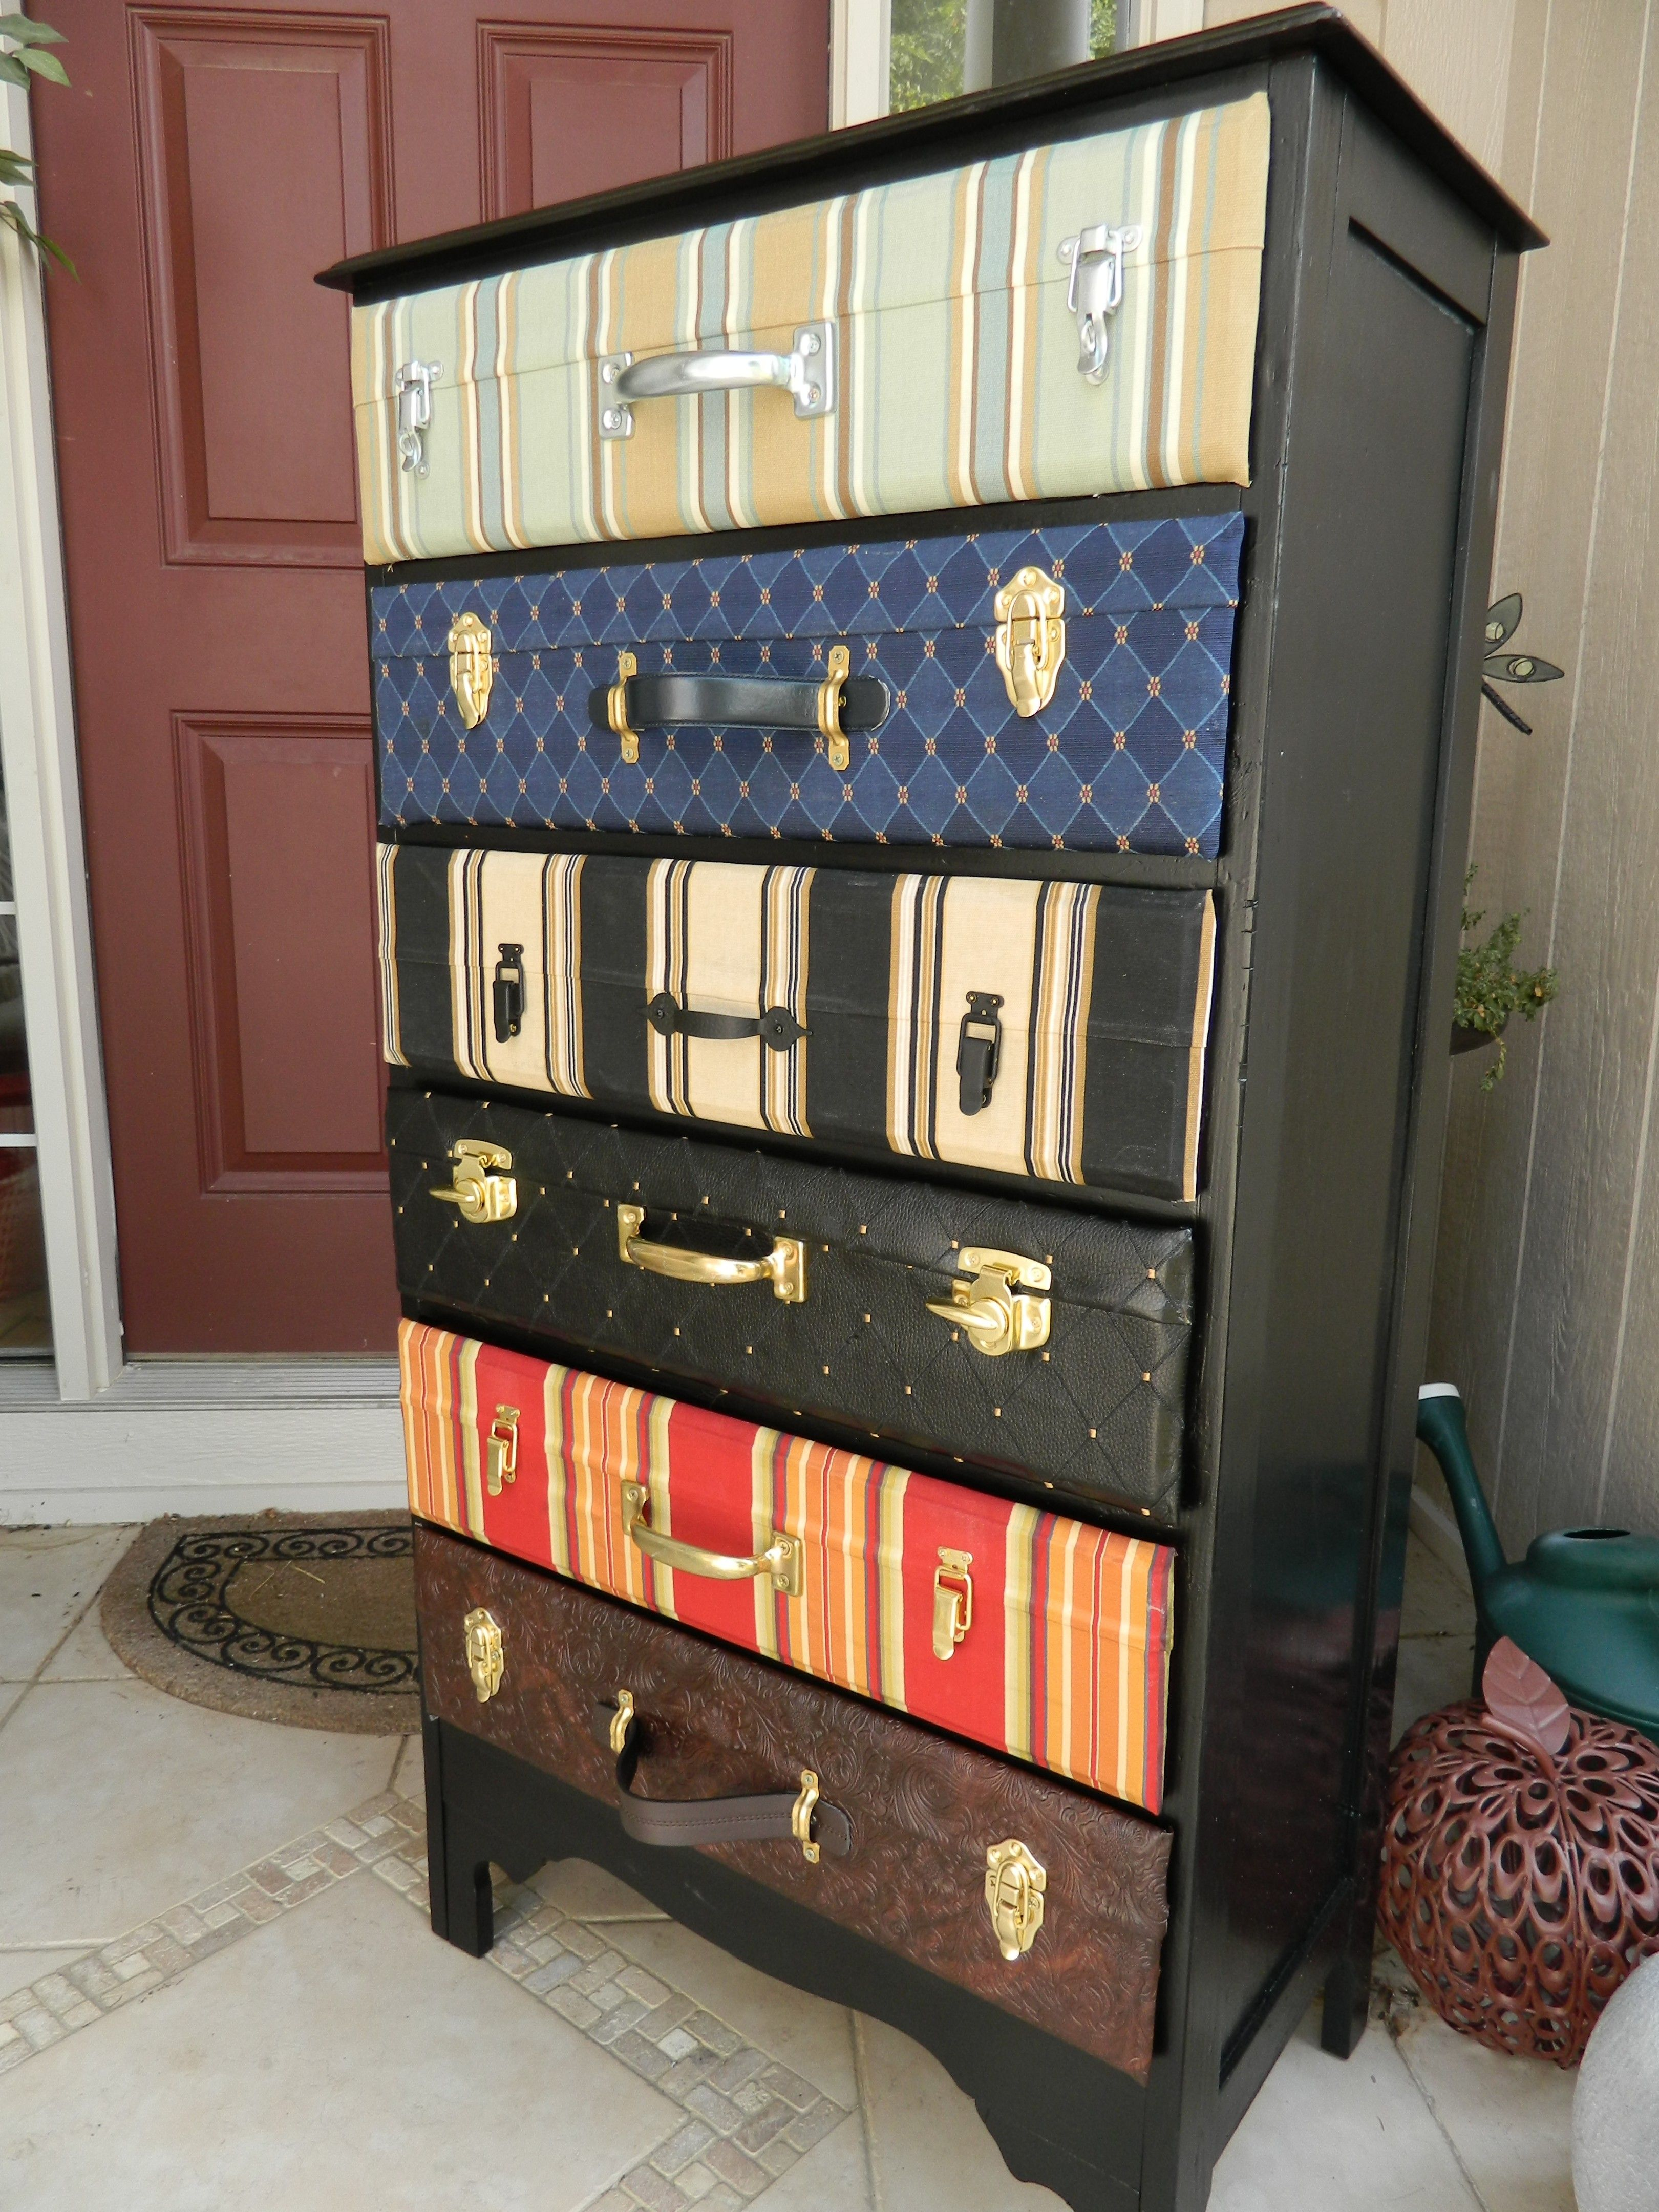 The Third Installment of the Dresser Upcycle Project Diy